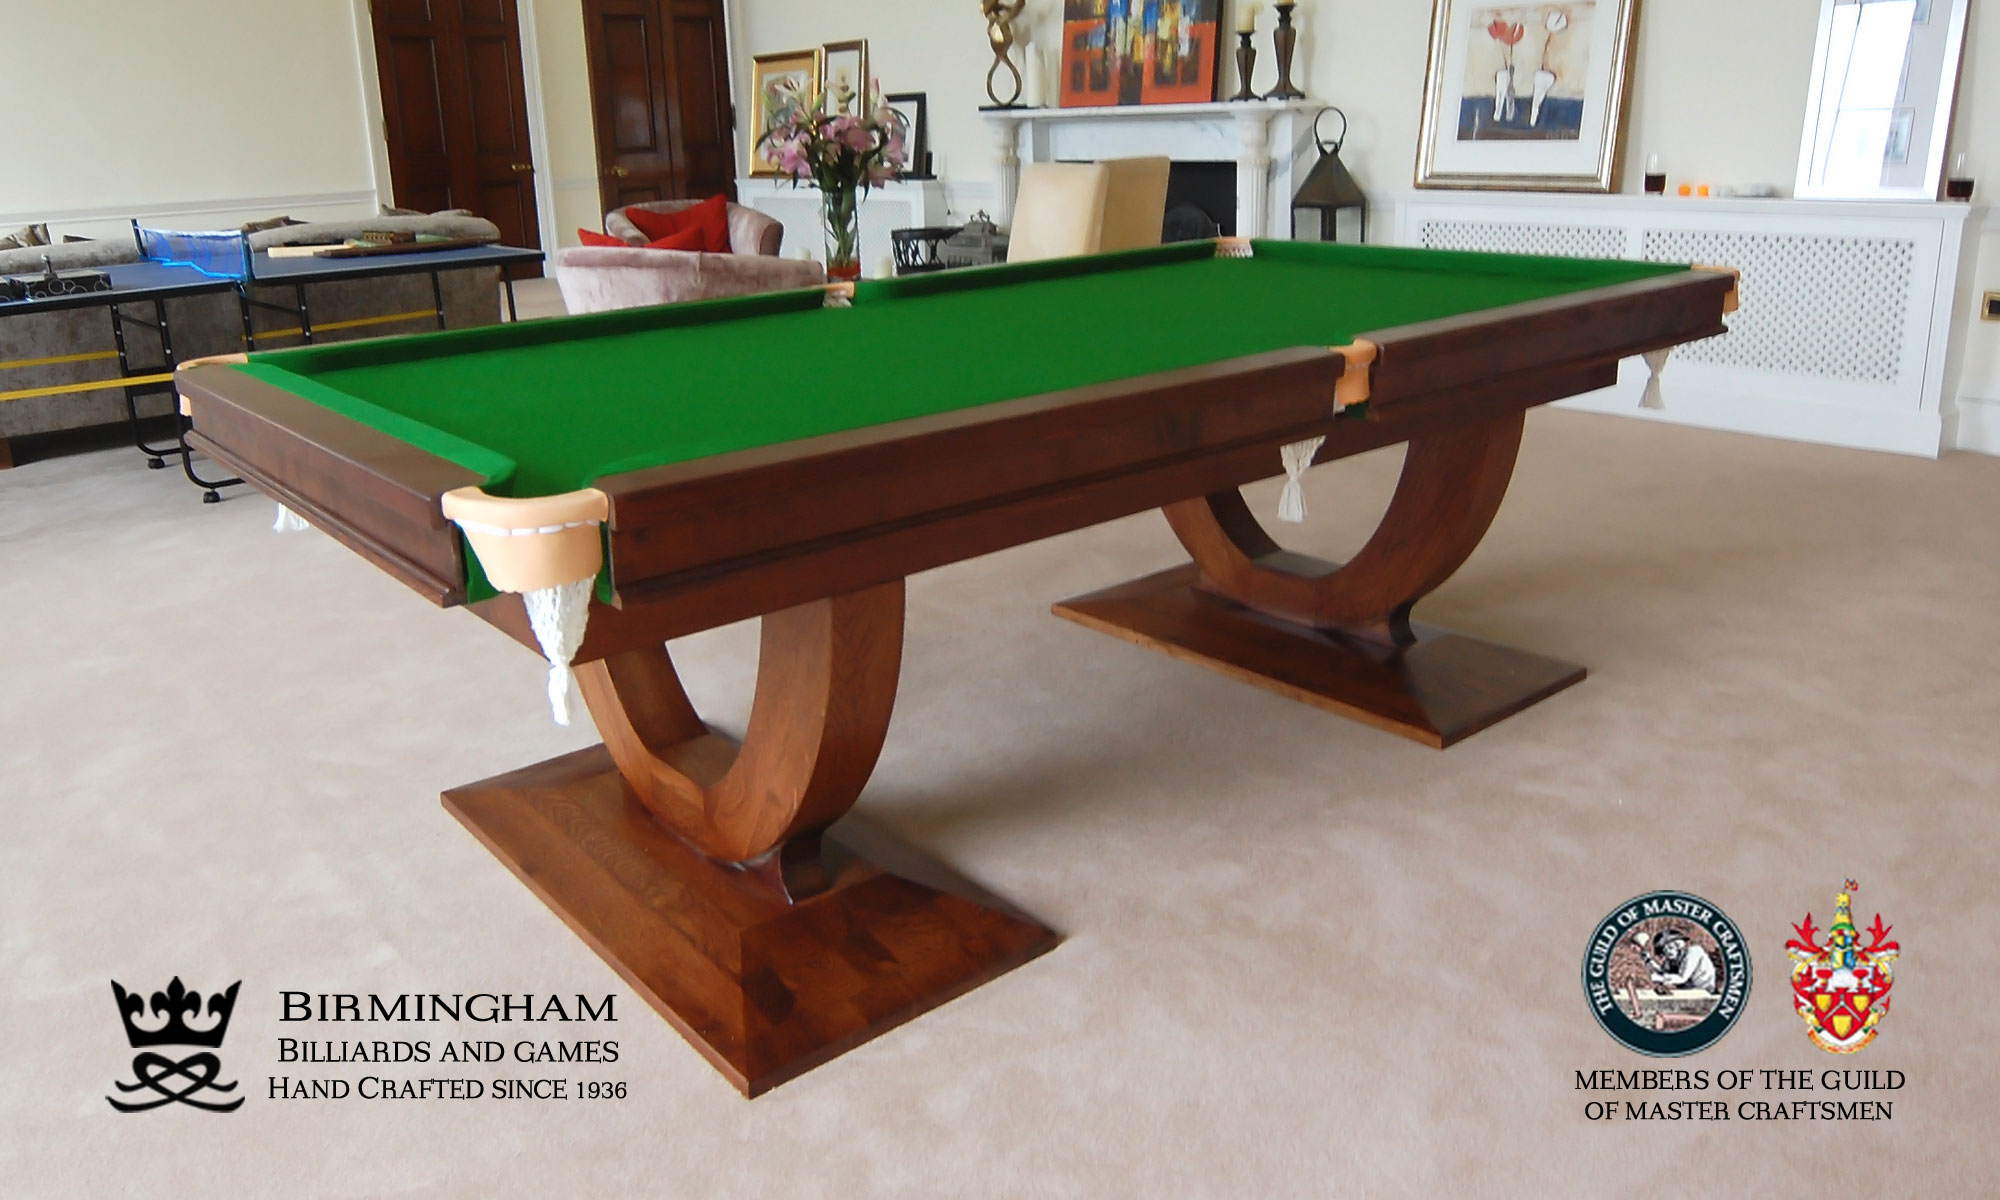 The mayfair hand made pool tables